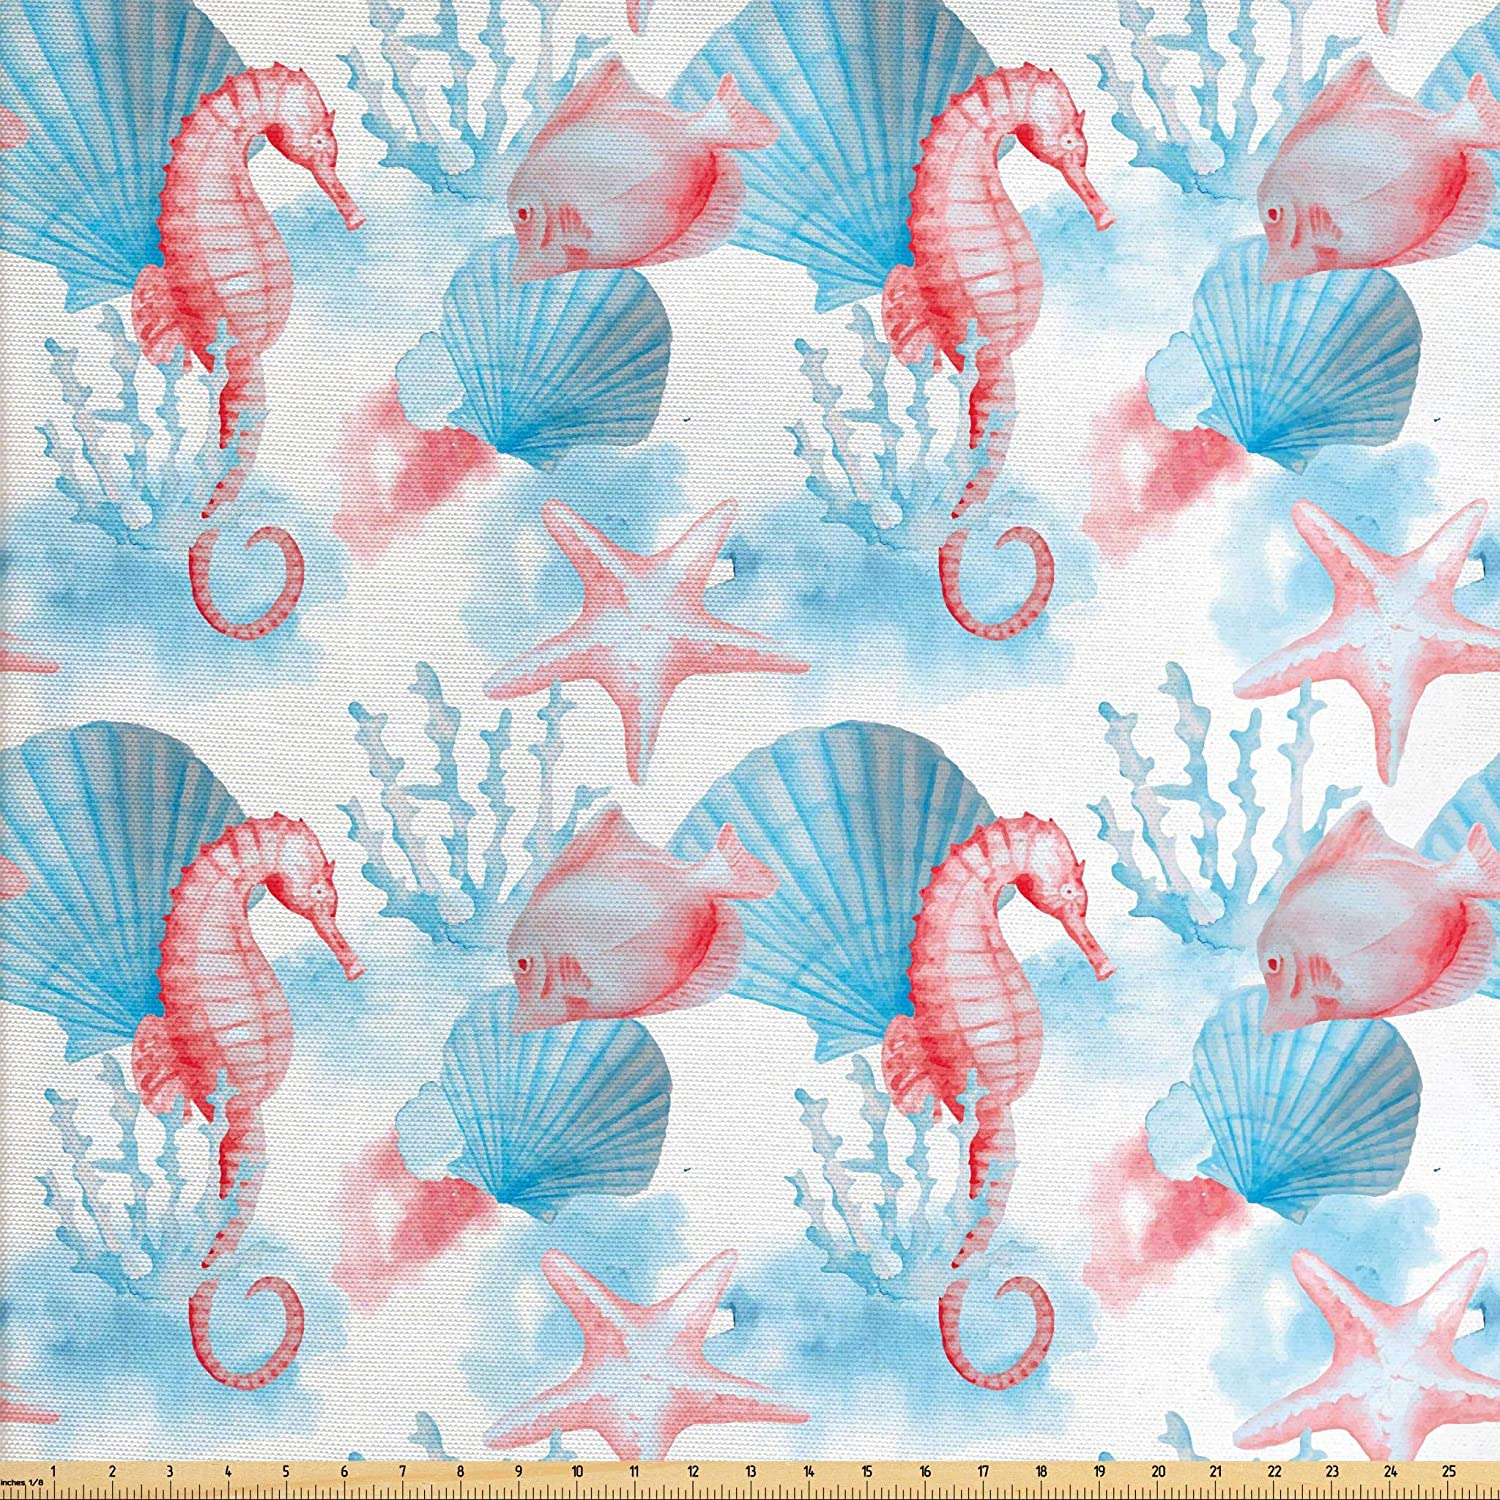 Lunarable Nautical Fabric by The Yard, Shells Sea Horse Corals Fish Sandy Beach Exotic Watercolor Effect, Decorative Fabric for Upholstery and Home Accents, 3 Yards, White Coral